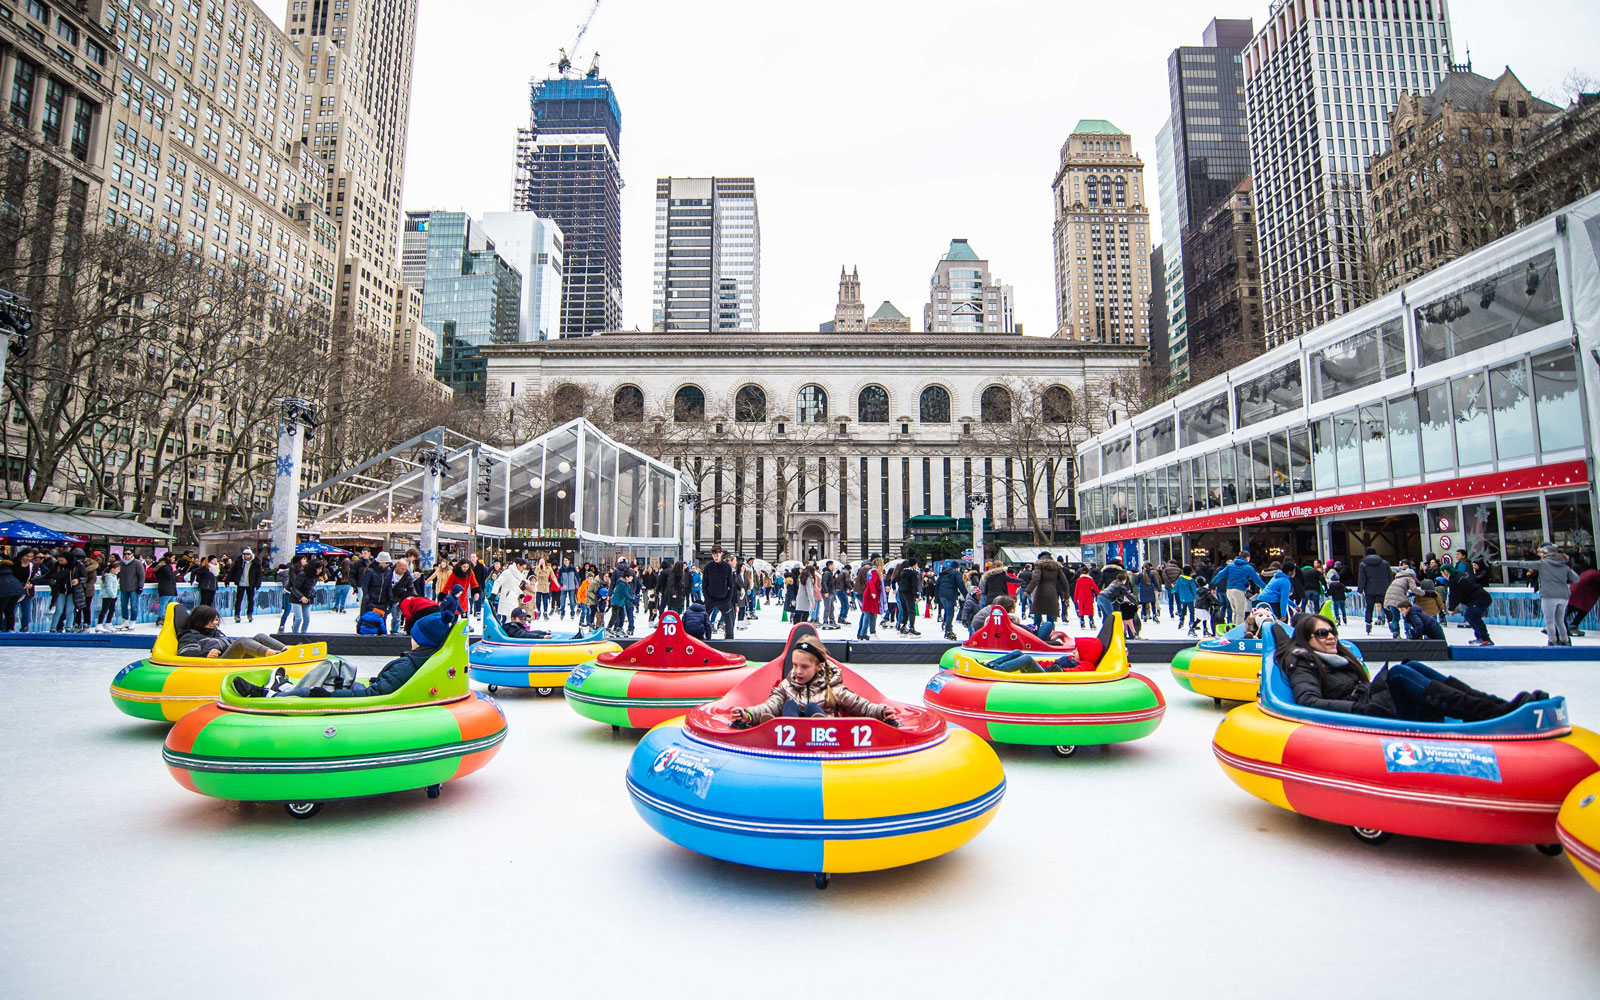 ice bumper cars in bryant park nyc 1